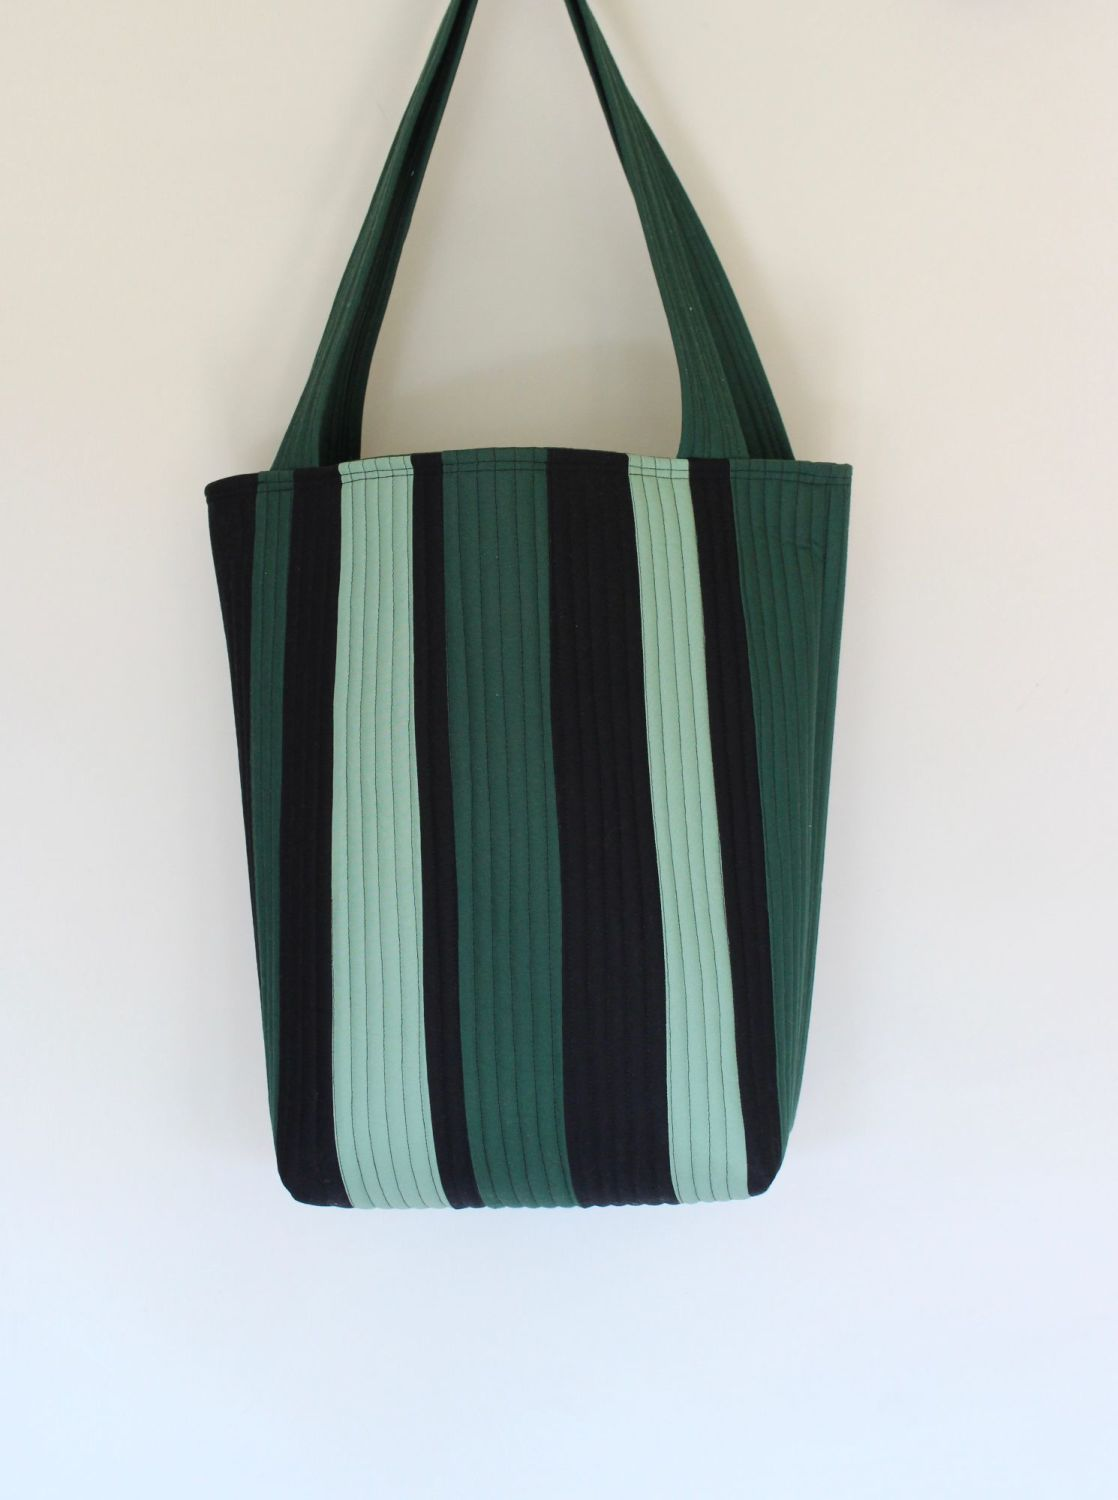 Tote Bag in Greens and Black